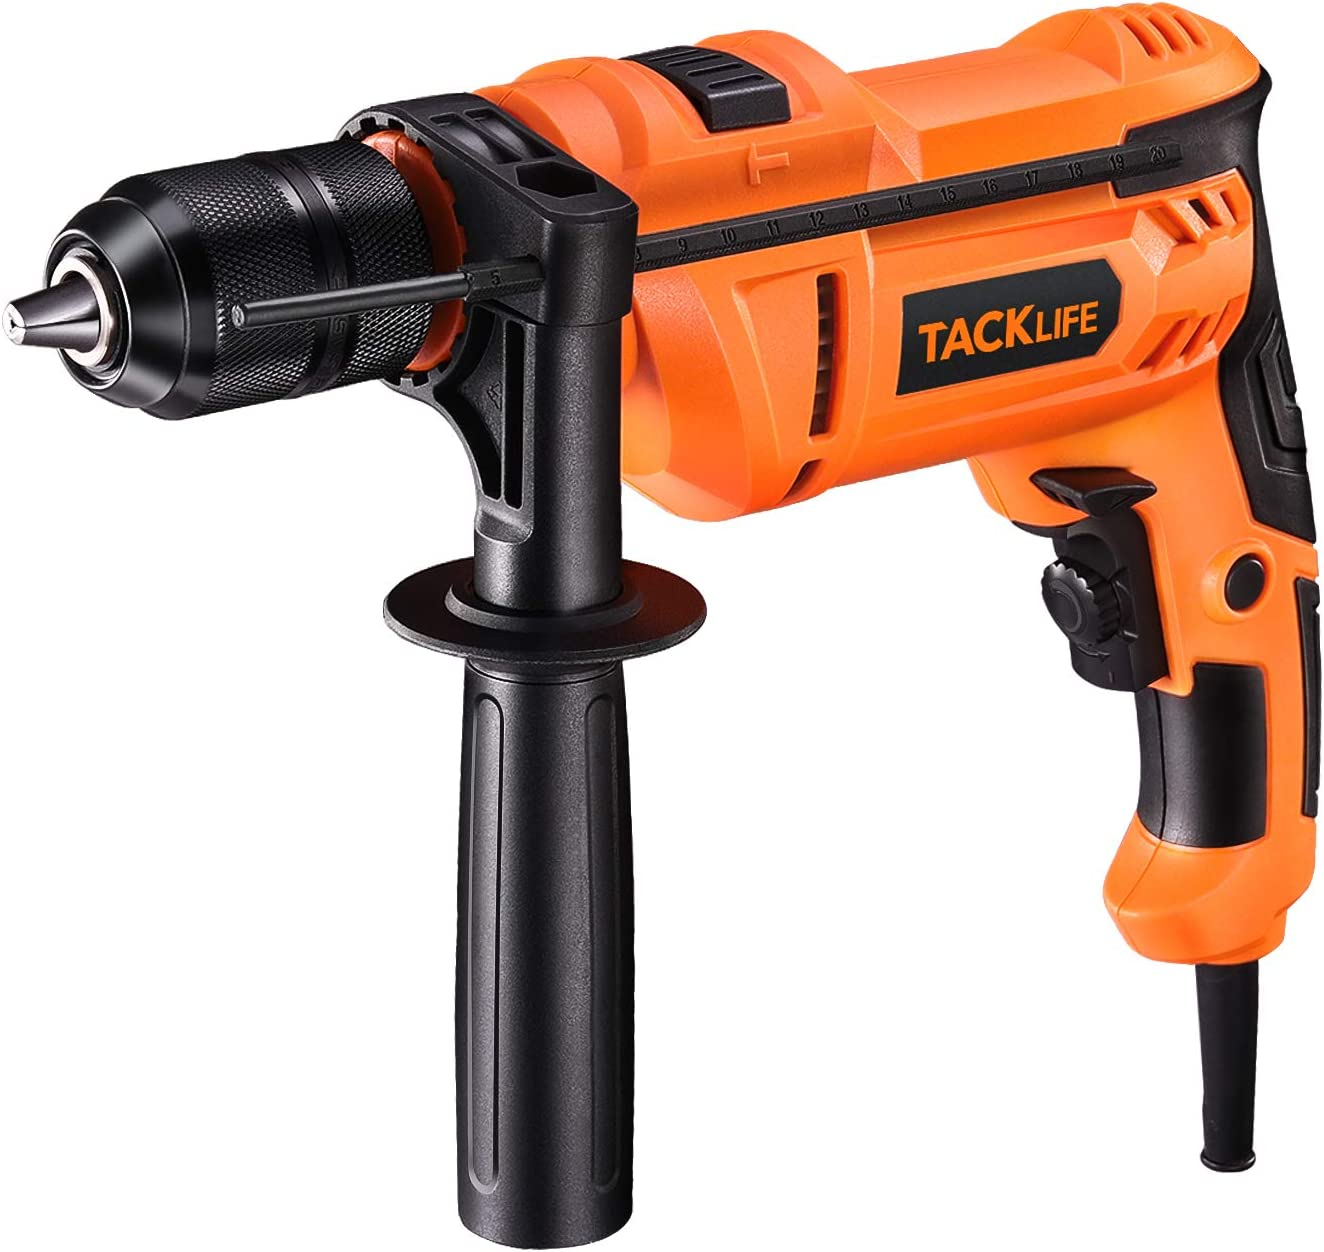 Hammer Drill, TACKLIFE 7.5Amp Corded Drill with 3000RPM, Variable Speed, 1.2/In. Keyless Chuck, Hammer & Drill 2 Mode in 1 for Brick, Steel, Concrete -PID05A